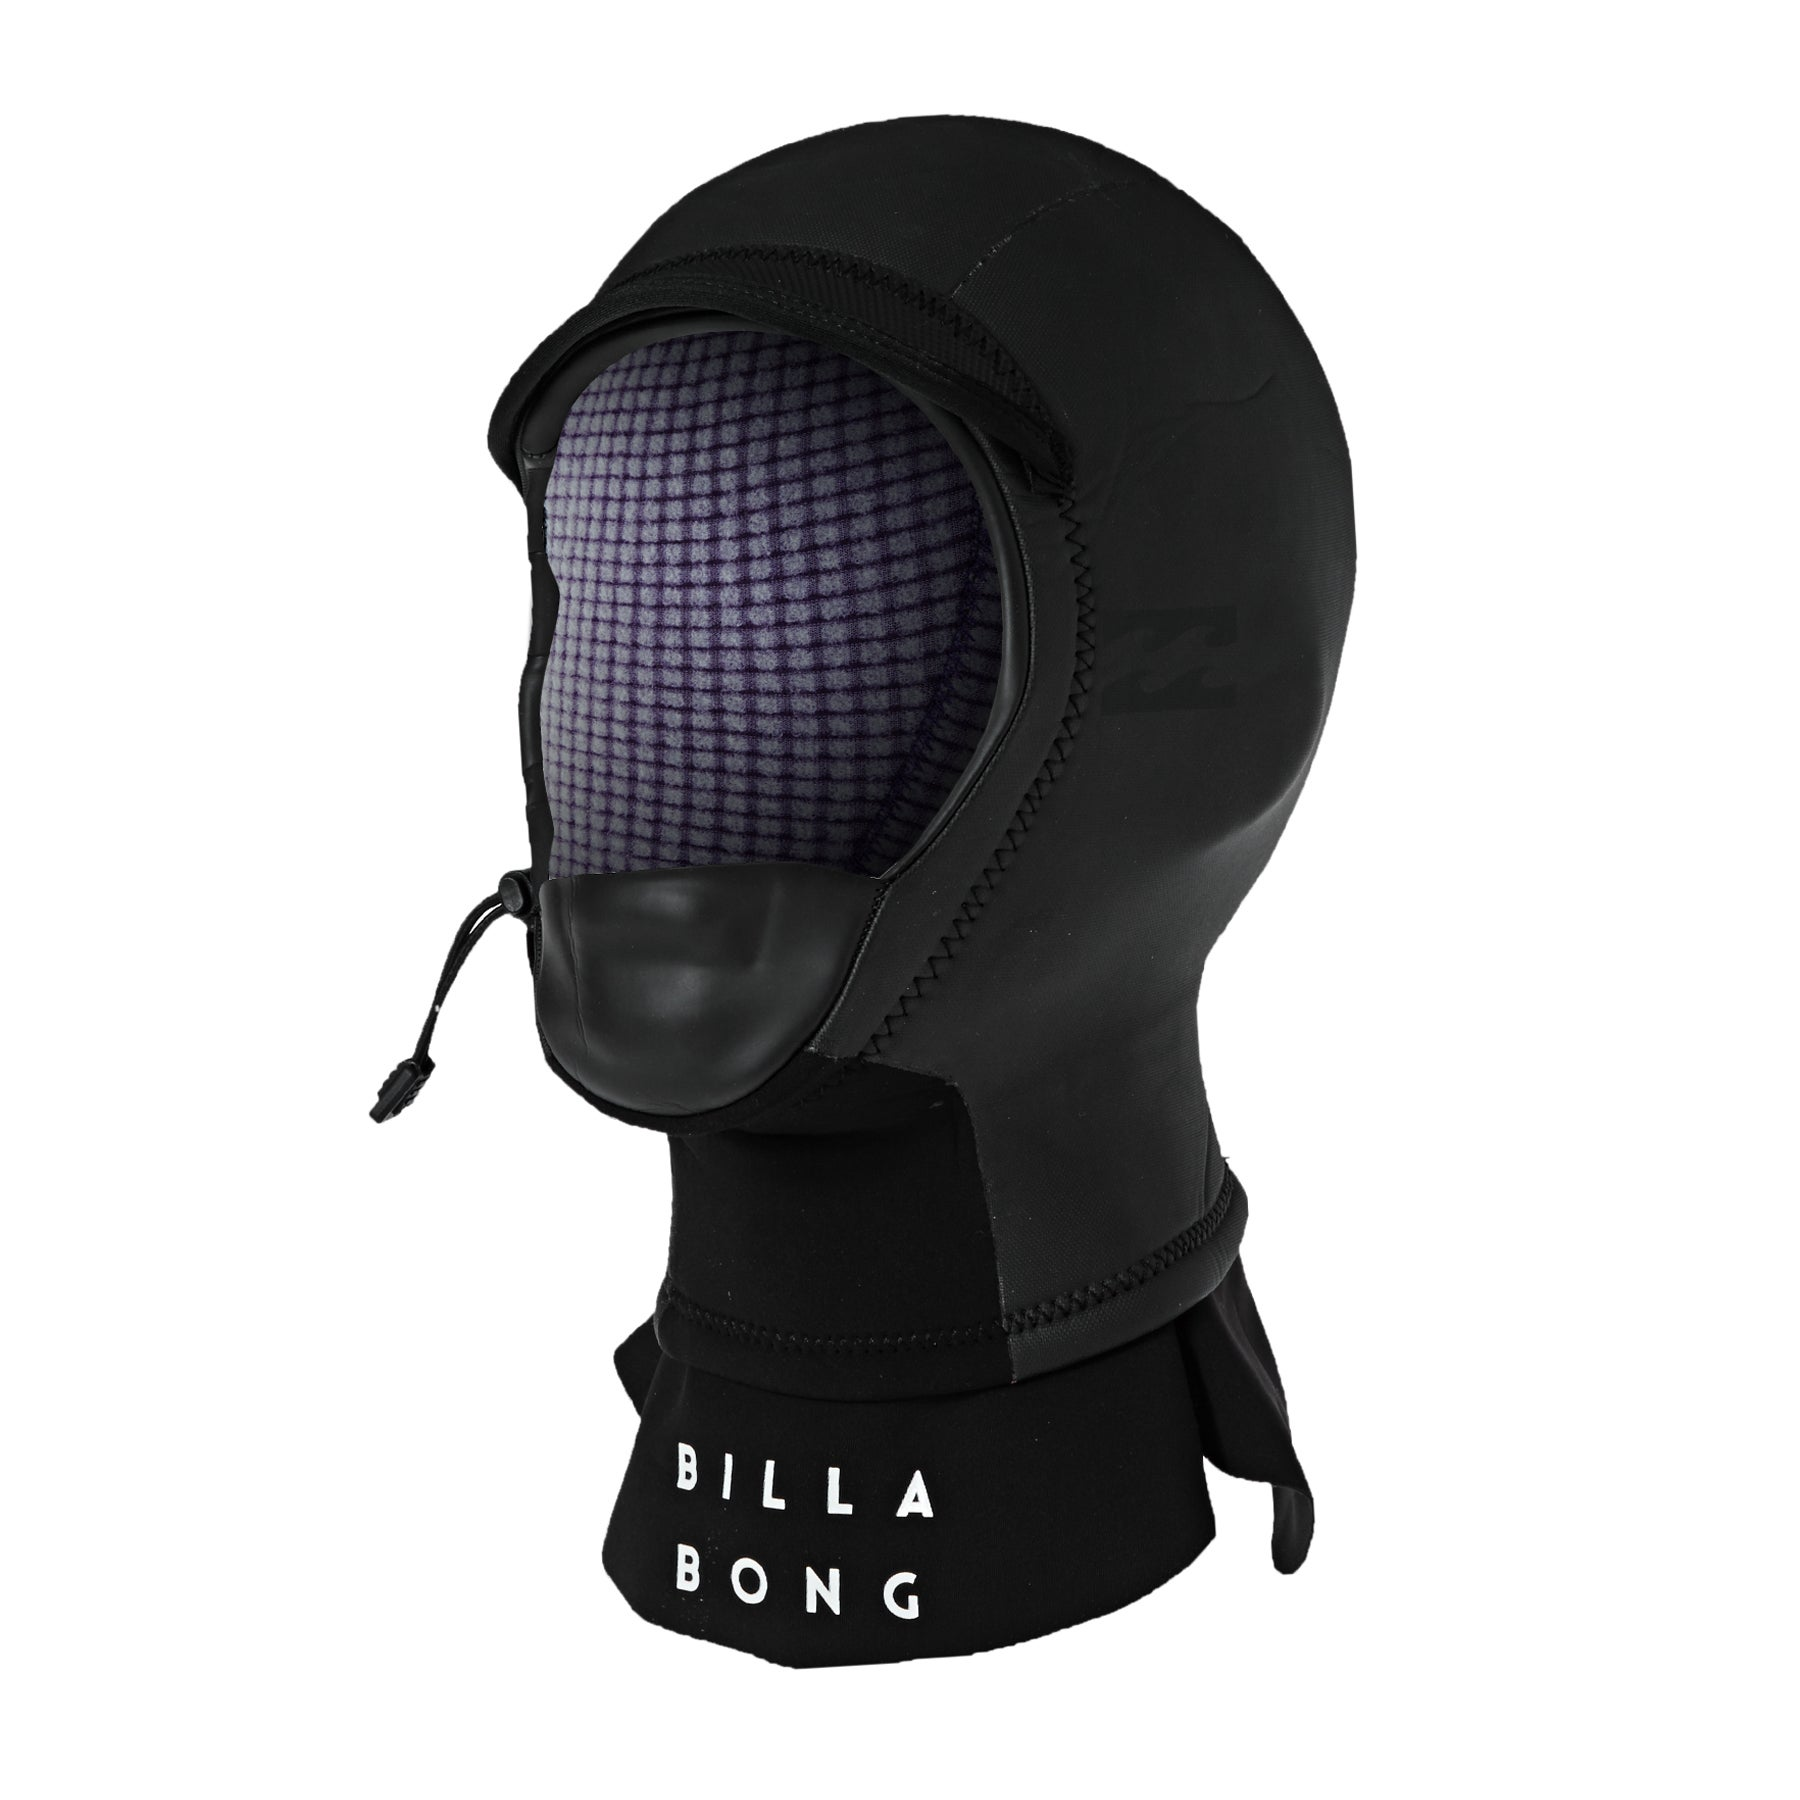 Billabong Furnace Carbon 2mm Wetsuit Hood - Black